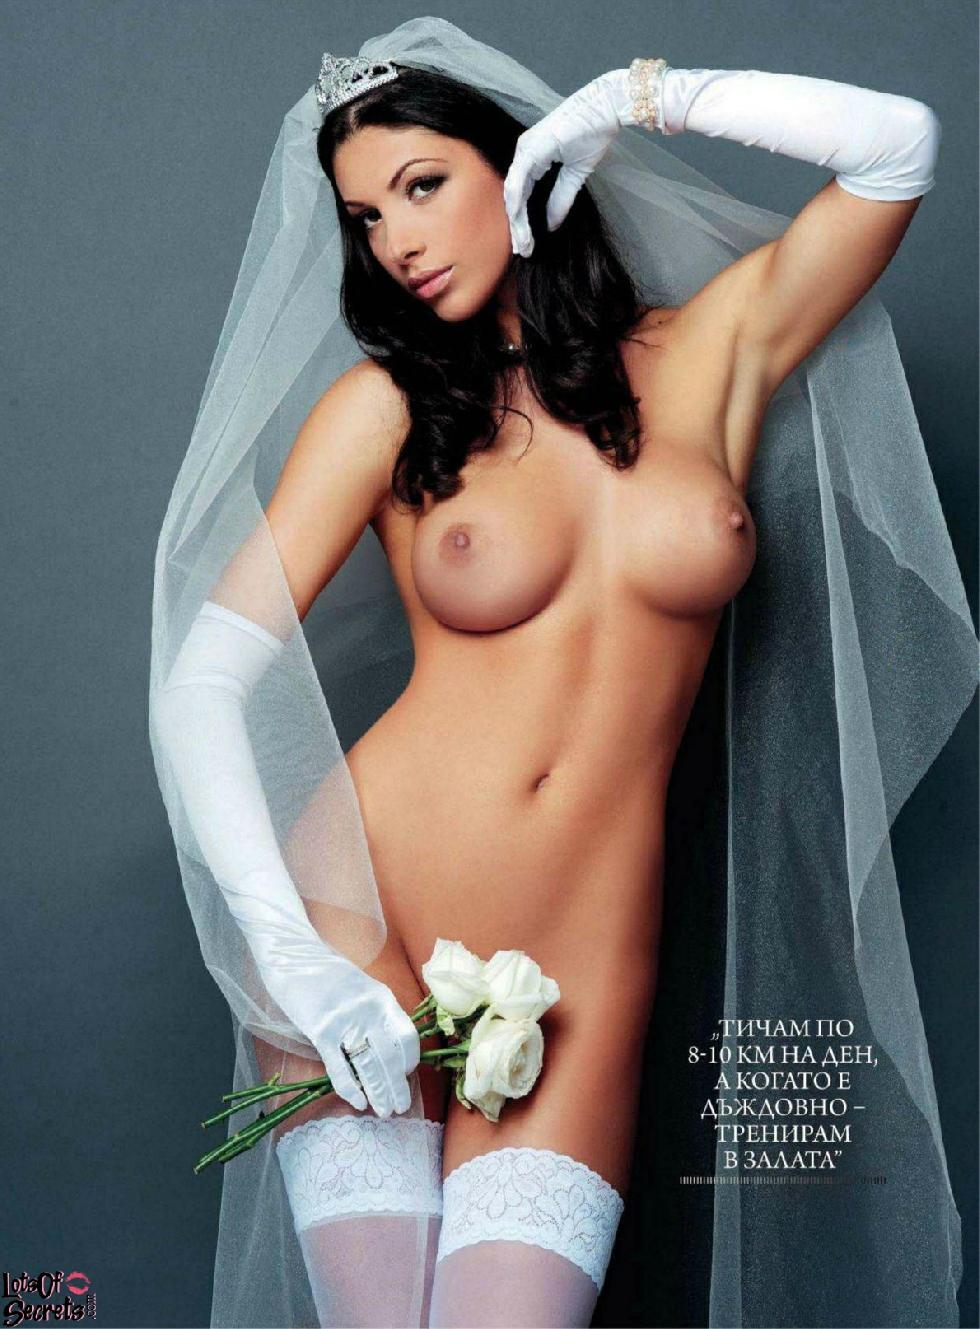 Gallery with brides. Part 1 - 19